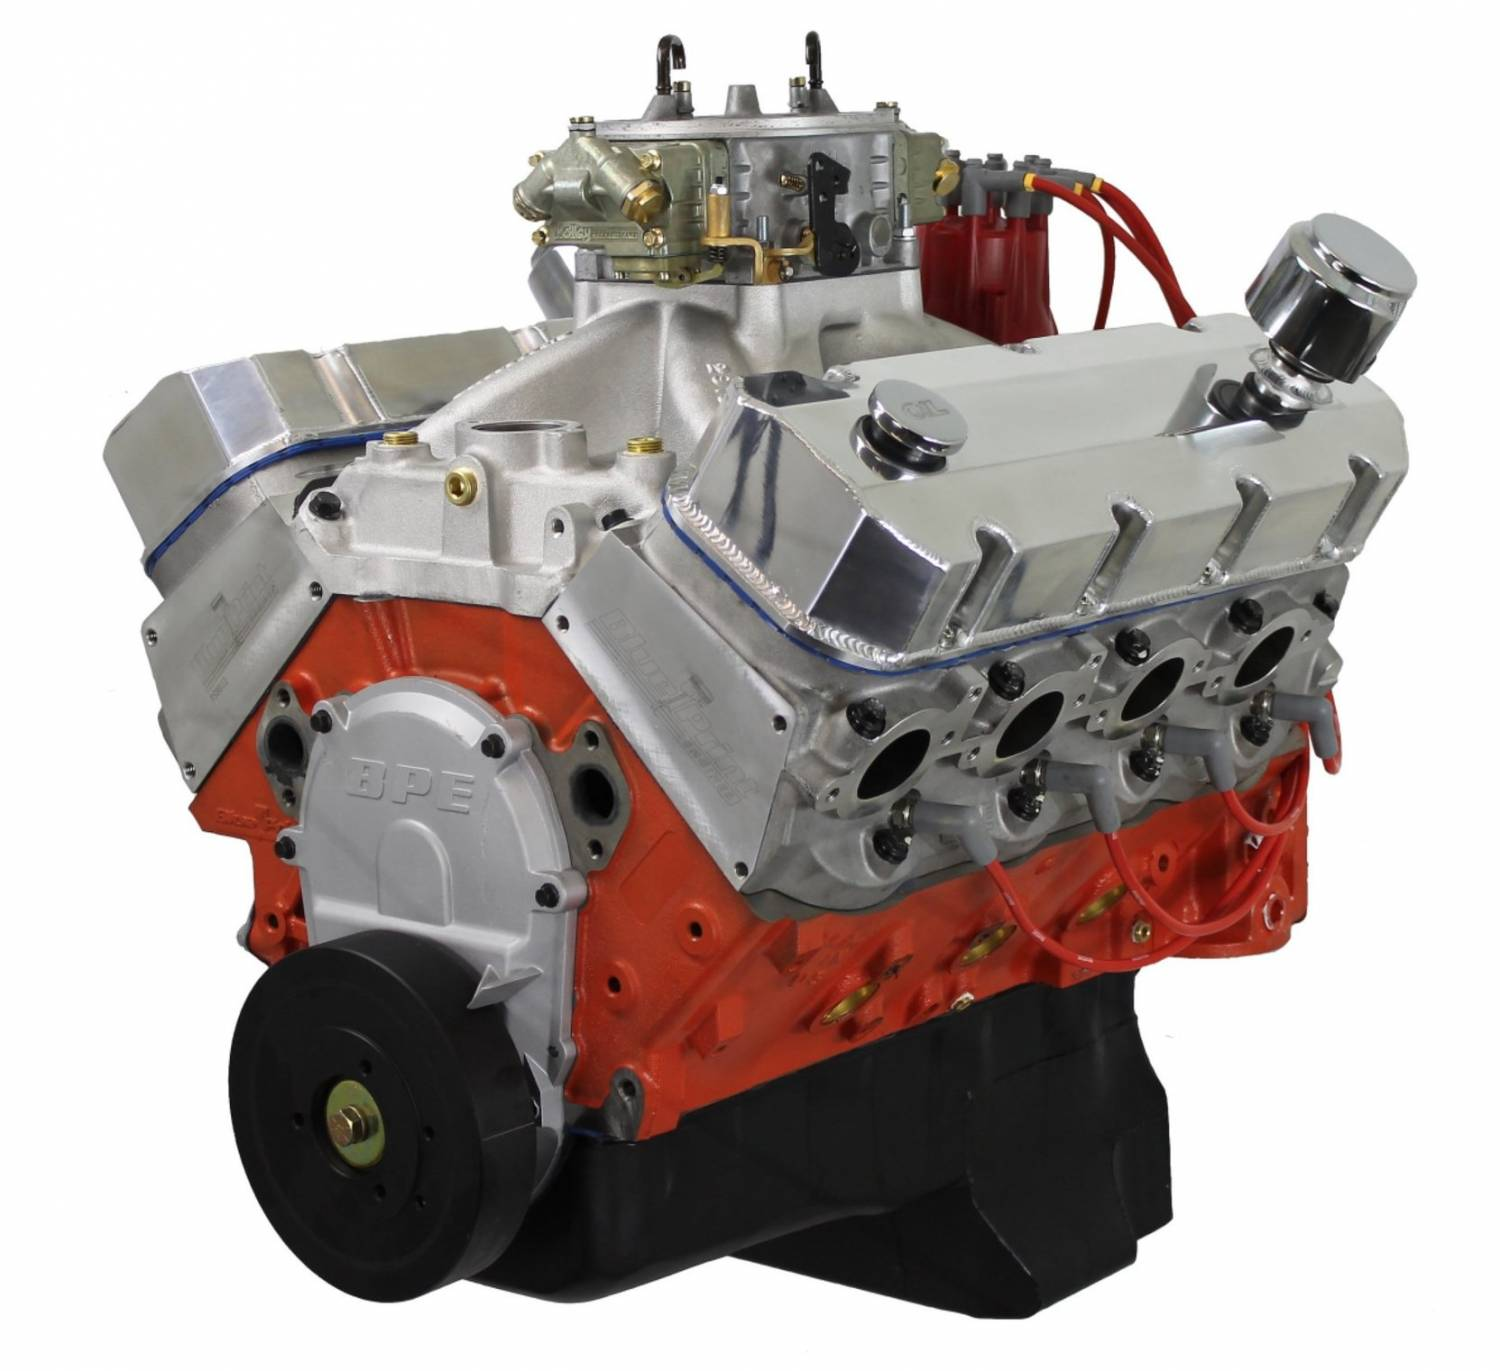 Ps6320ctc blueprint engines 632ci proseries stroker crate engine blue print ps6320ctc blueprint engines 632ci proseries stroker crate engine big block gm malvernweather Choice Image